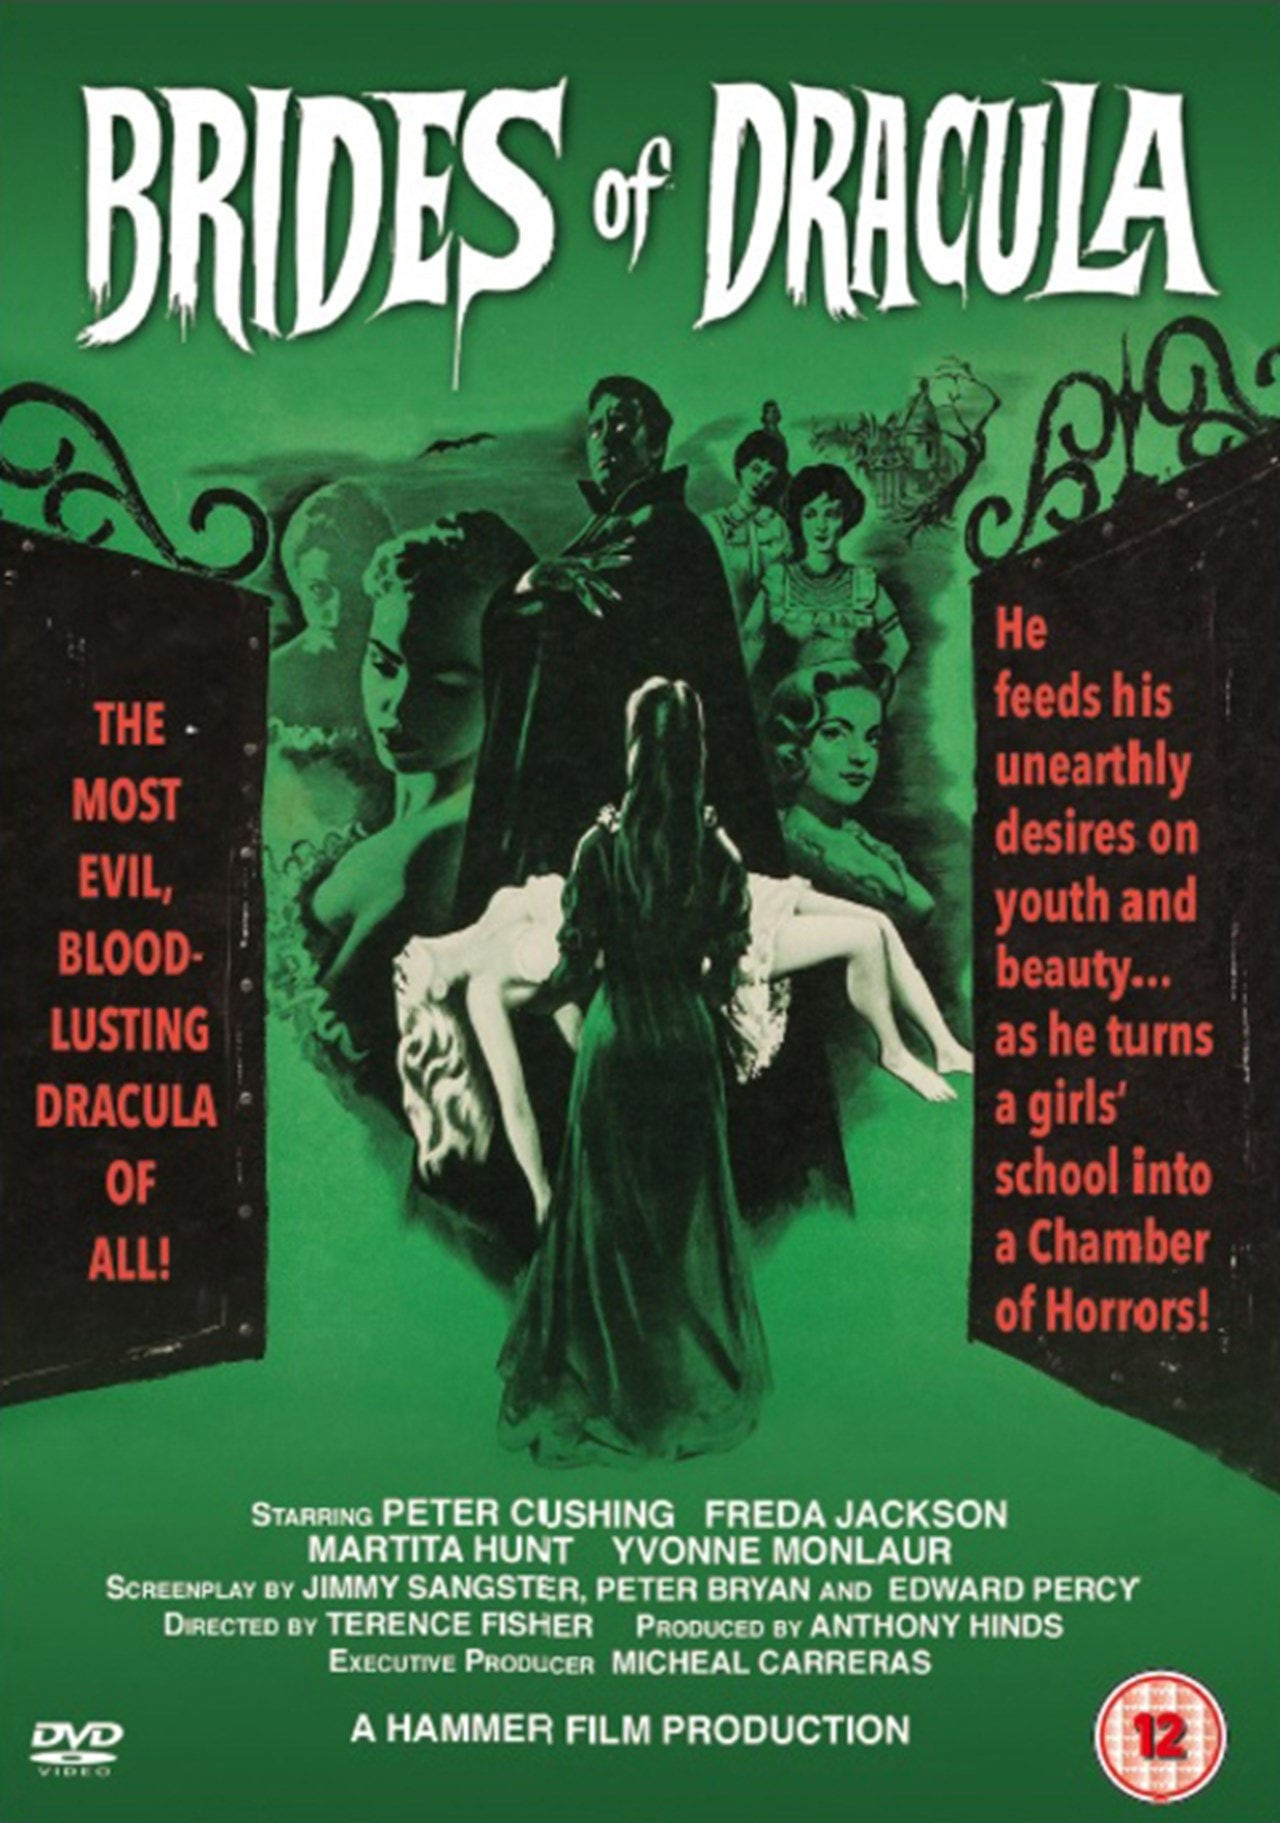 The Brides of Dracula - 1